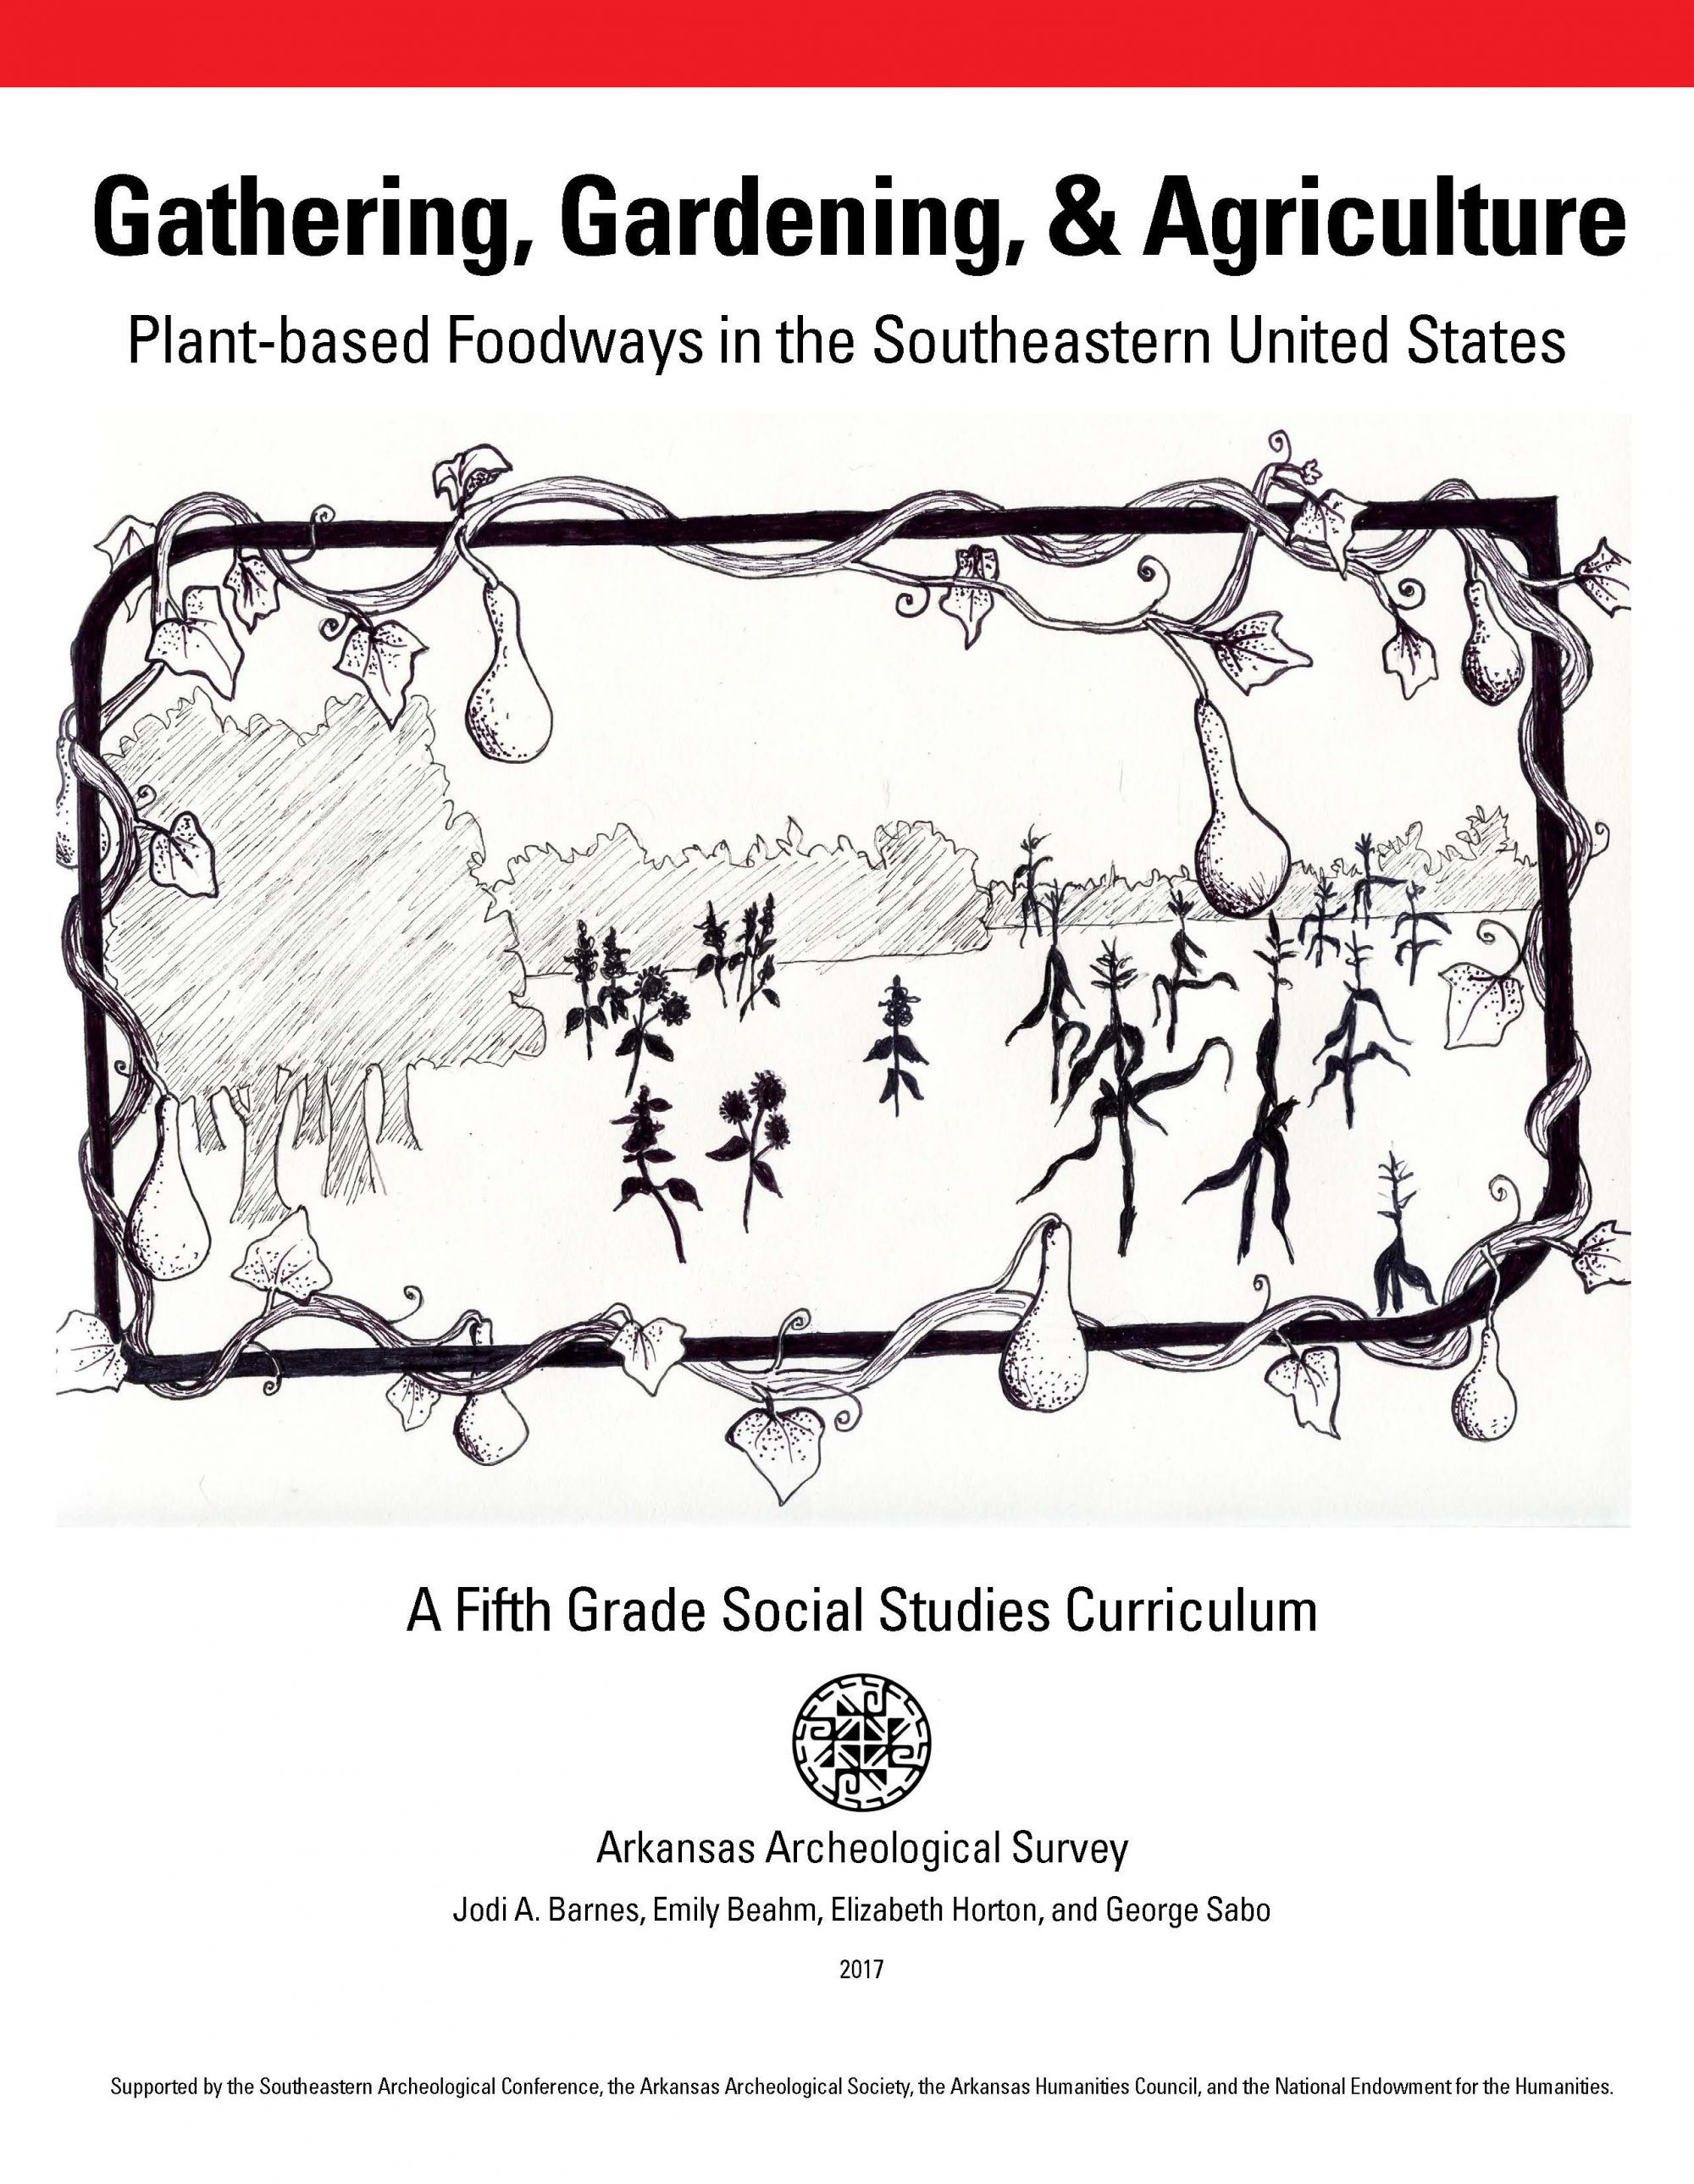 Gathering, Gardening, & Agriculture - curriculum publication cover